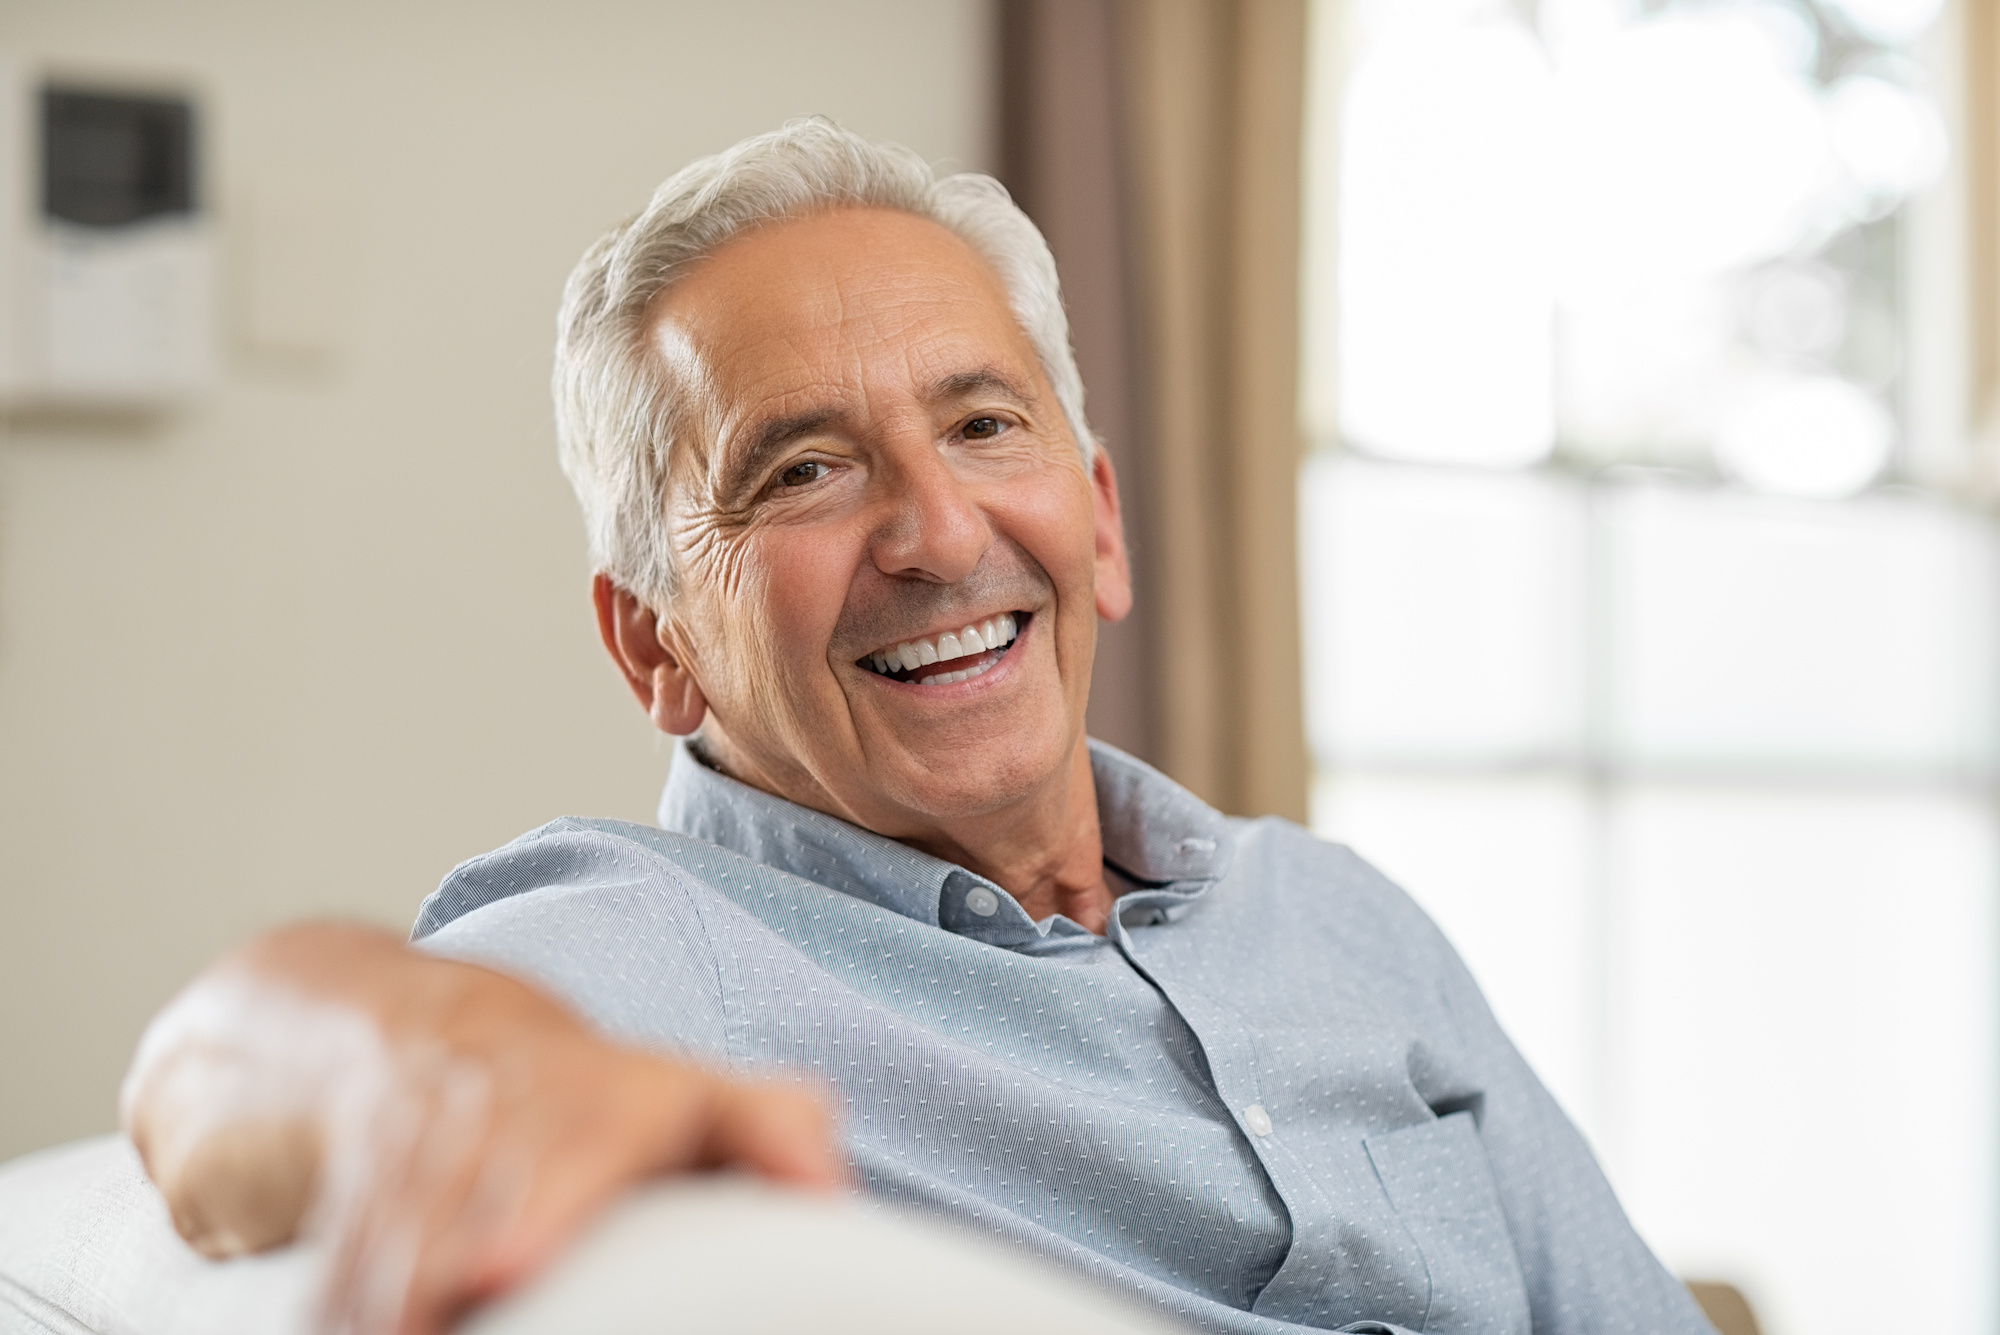 The Most Common Types Of Dental Implants – What's Right For You